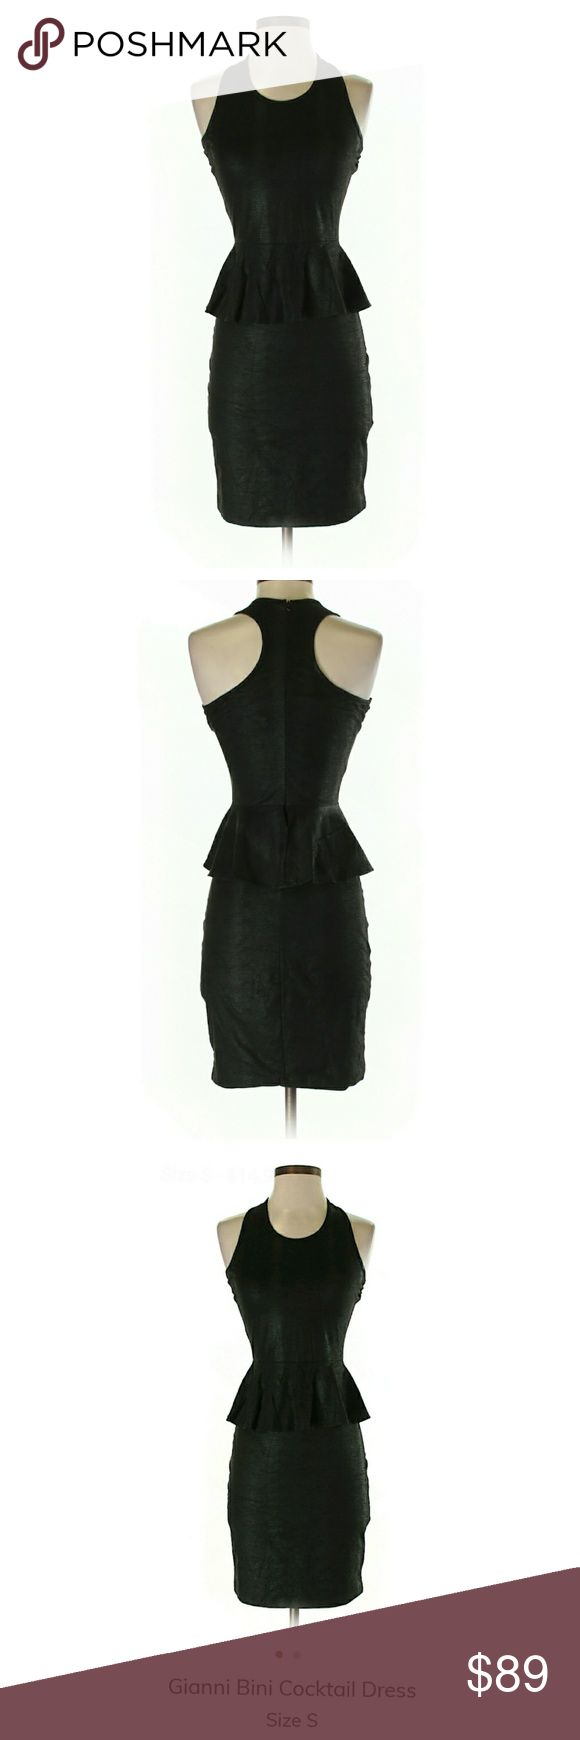 """Gianni Bini Cocktail Dress 🔥 88% Polyester,12% Spandex. 32"""" Chest, 35"""" Length. This dress is hot! Black, sleeveless, crew neckline, mini silhouette. Relatively thin, textured fabric. Subtle textured stripes you can really only see when the light hits it a certain way. You'll turn heads in this LBD! The peplum design hides any imperfections and creates an hourglass silhouette.     *I'm lucky that my buyers have been nothing short of wonderful, but I video record all purchases before and…"""